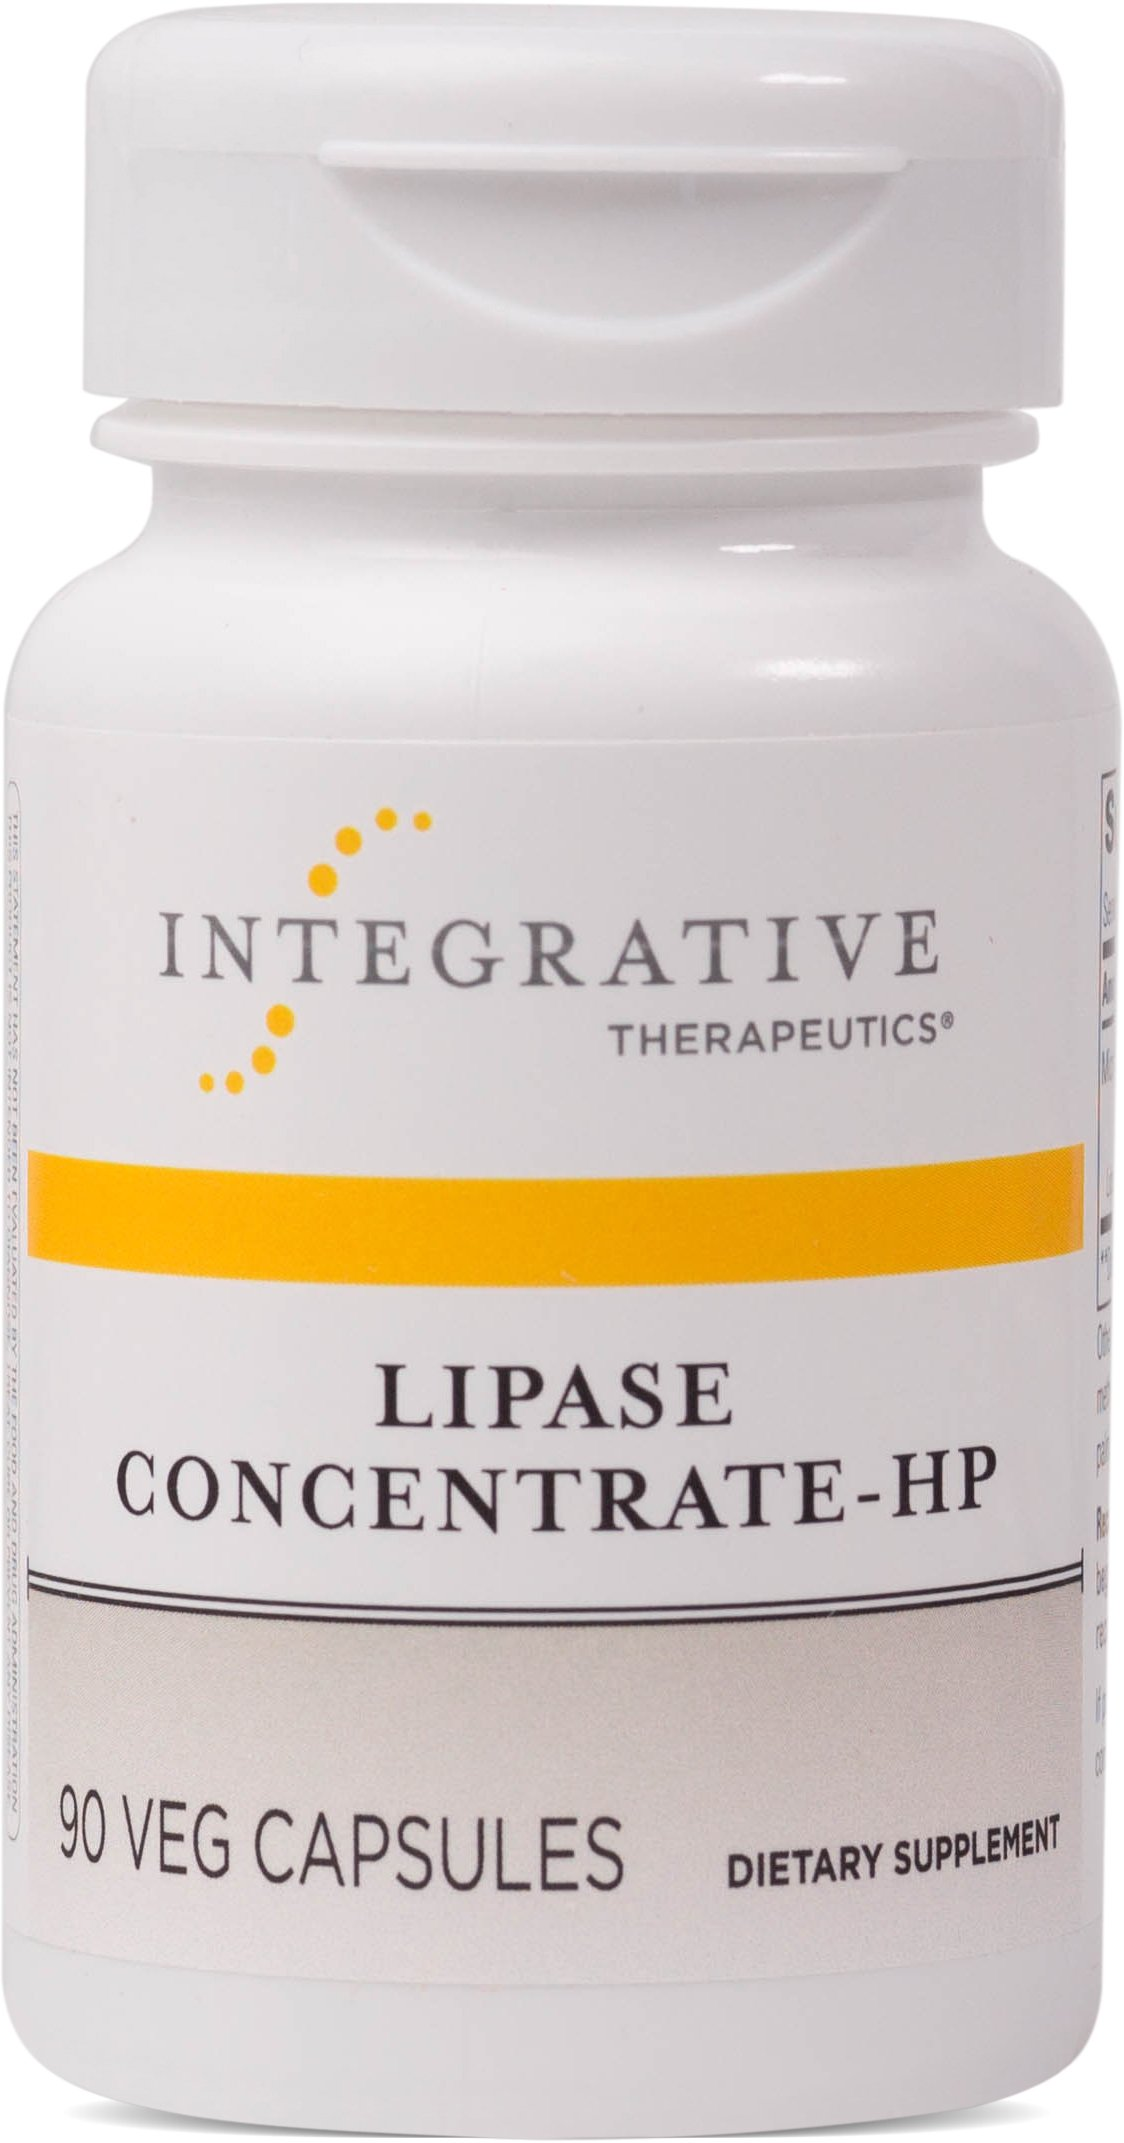 Integrative Therapeutics - Lipase Concentrate-HP - High Potency Enzyme Aids in Digestion of Fat and Absorbs Nutrients - Vegetable Capsules - 90 Count